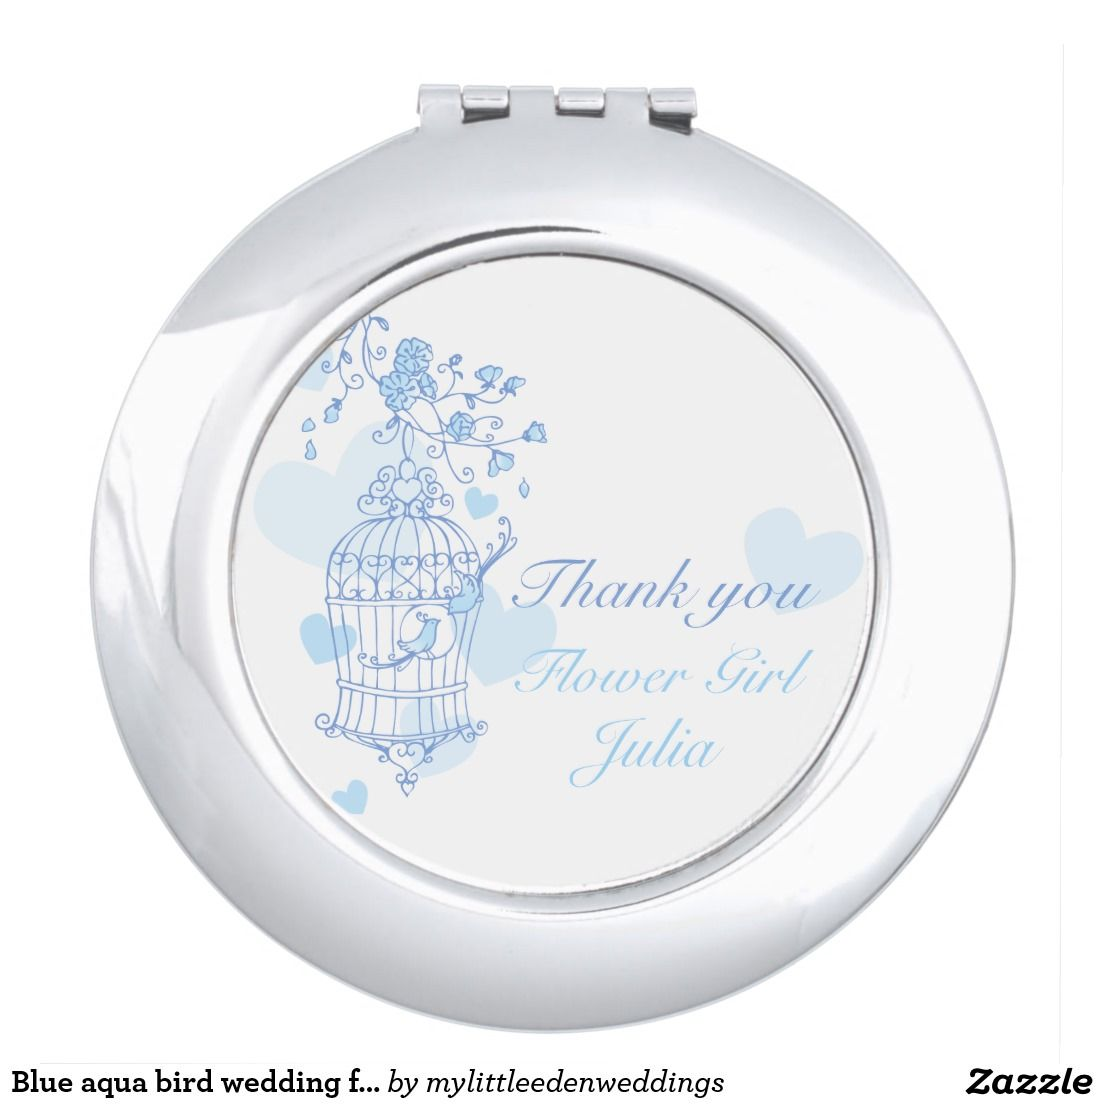 Blue aqua bird wedding favor flower girl mirror vanity mirror ...